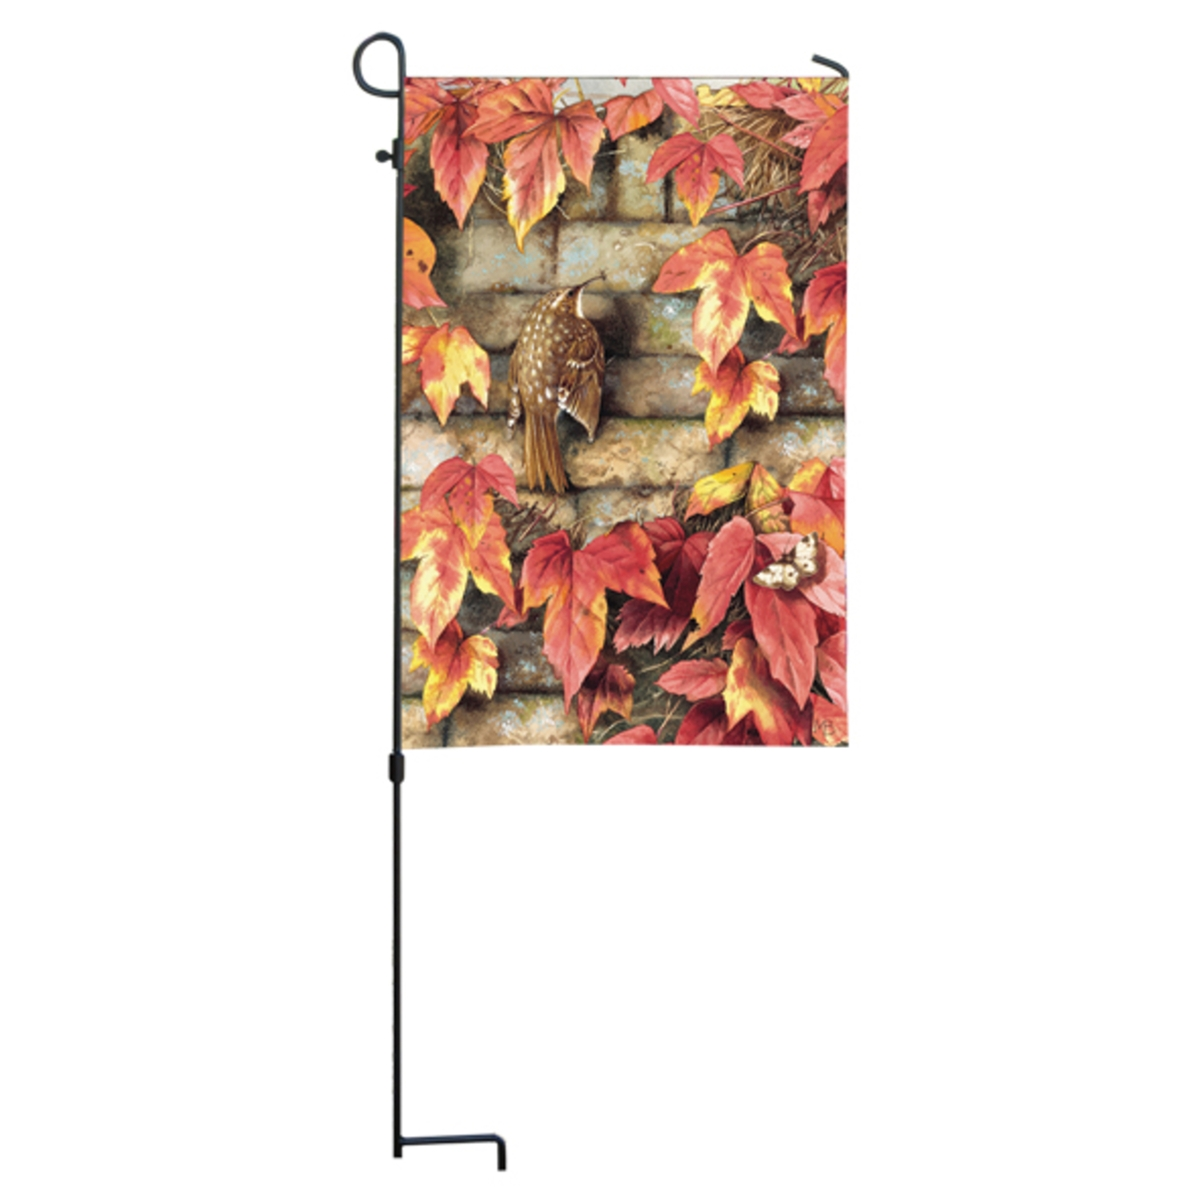 Happy Harvest Garden Flag The National Wildlife Federation